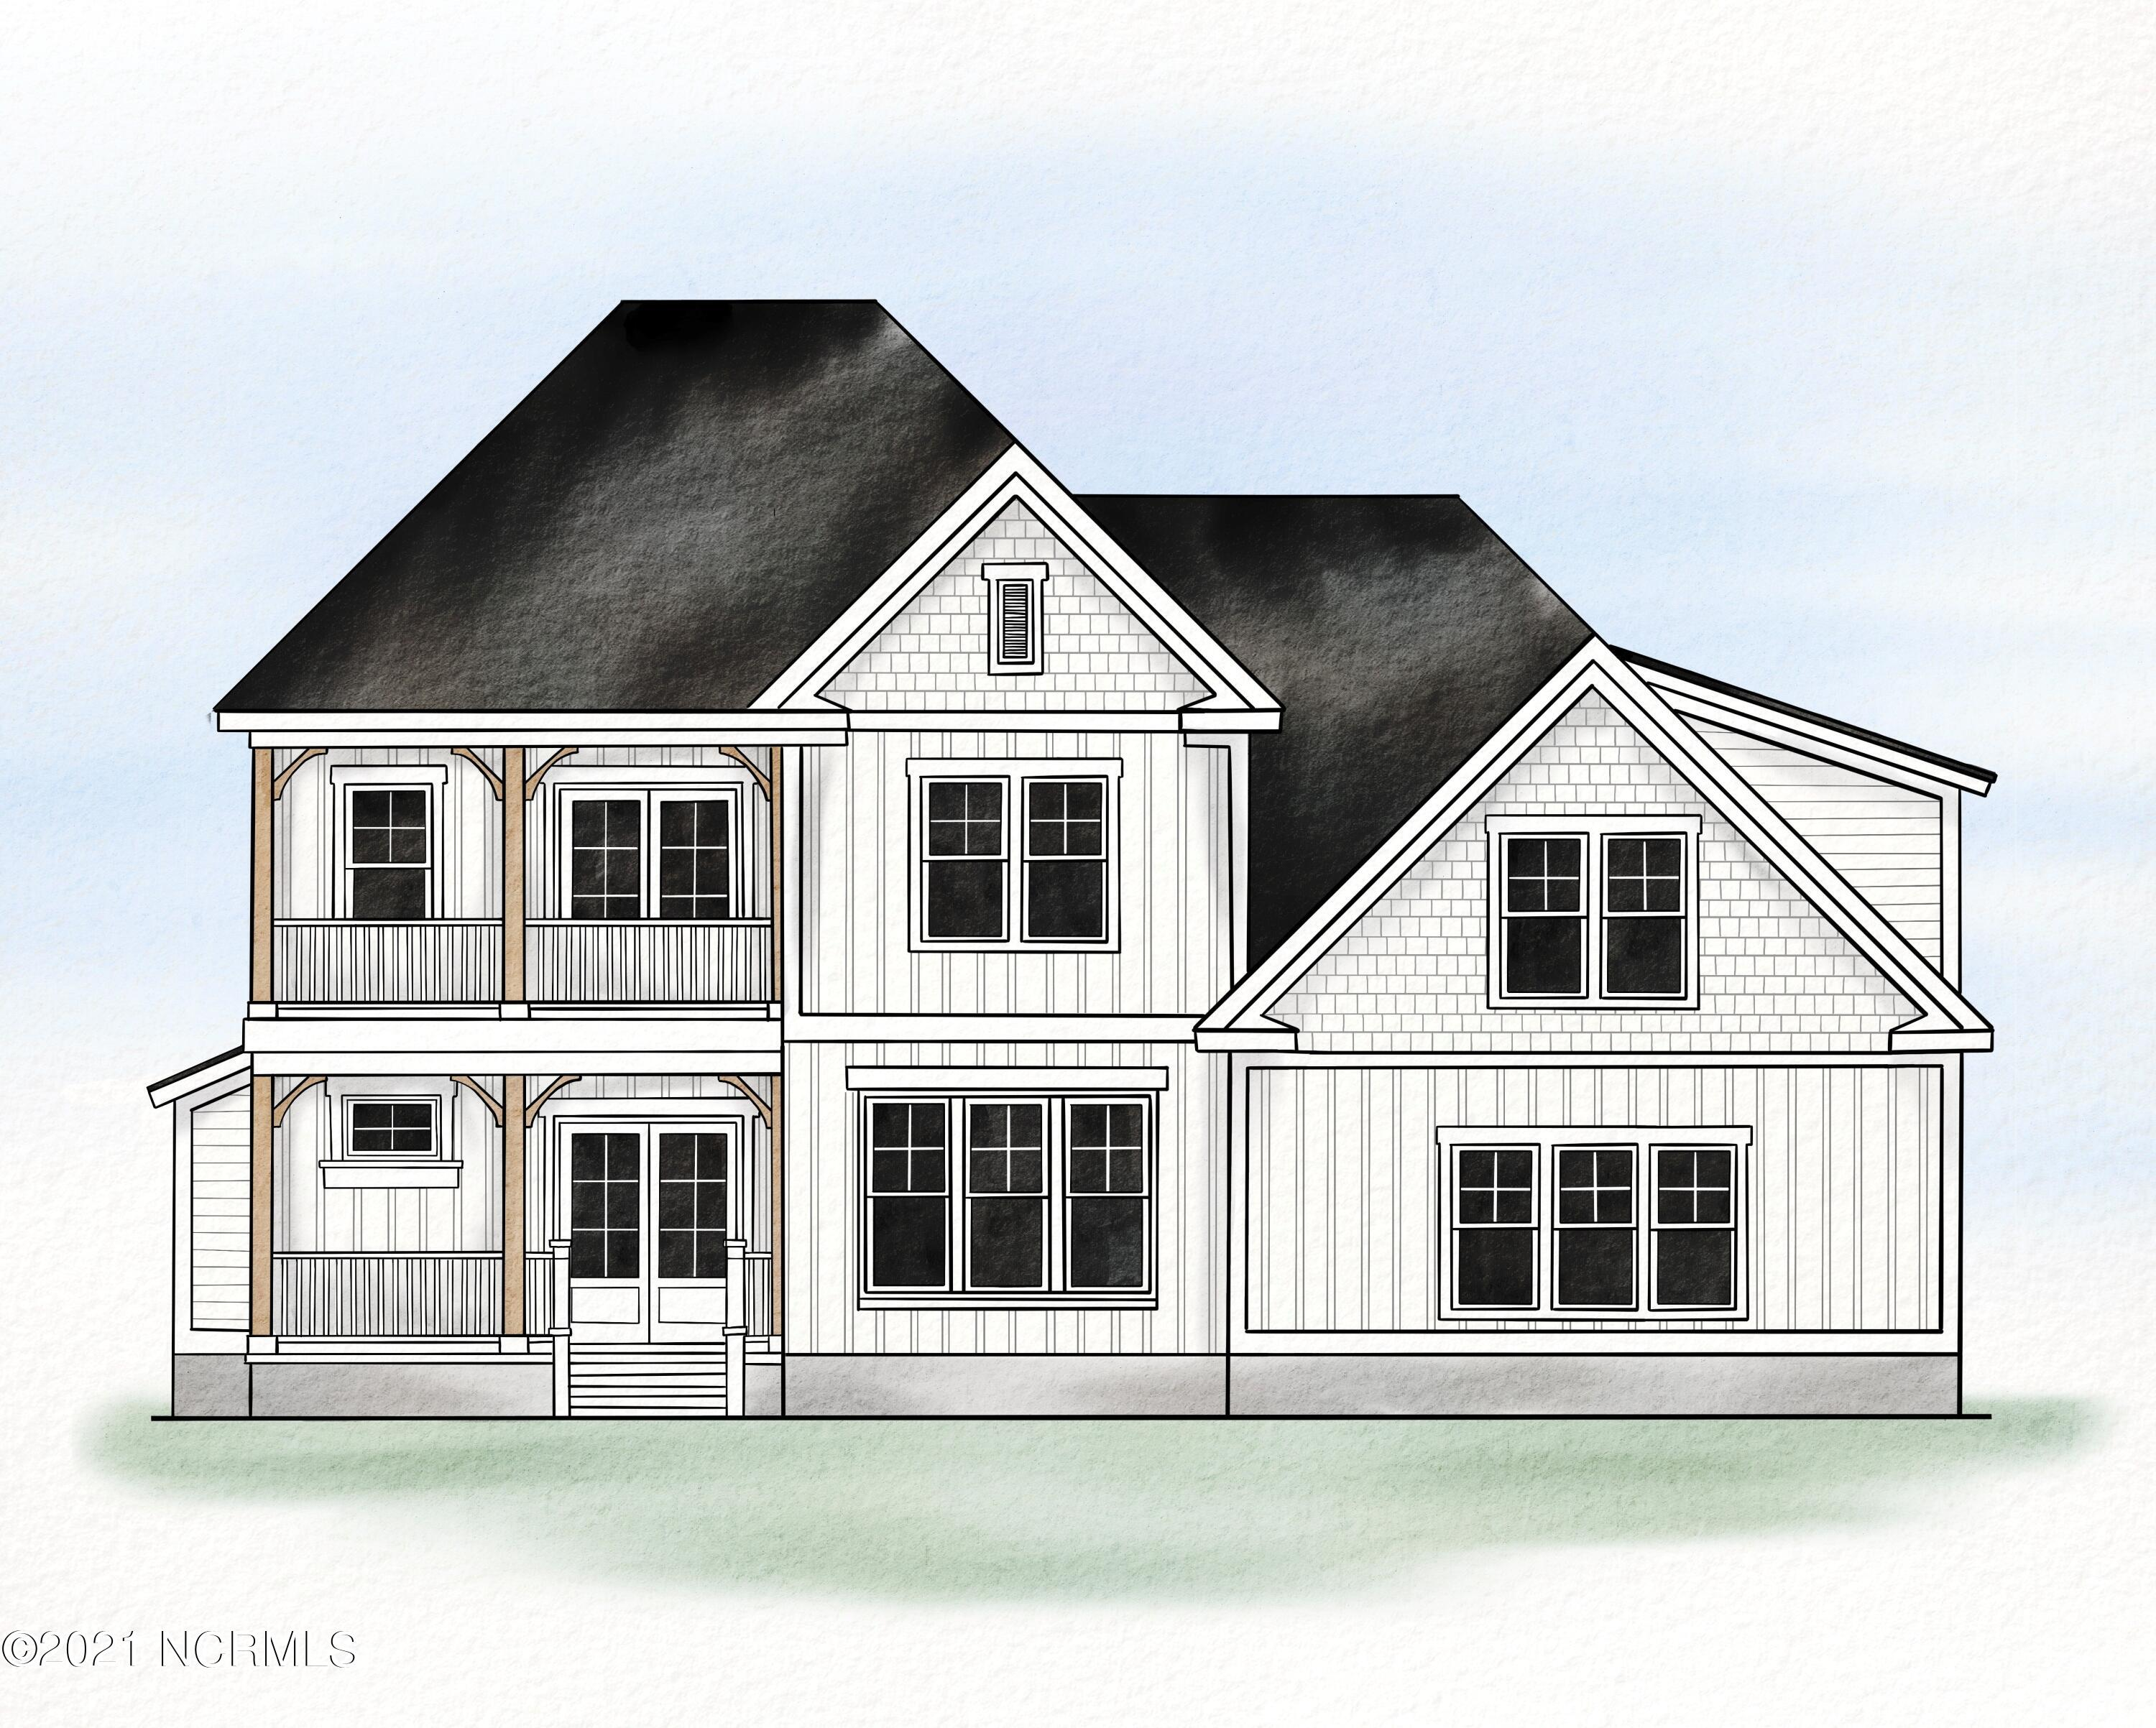 Nestled in the established community of Pelican Reef is this custom designed Maple Hill floor plan by Russell May Homes. This 3,000 square foot home comes equipped with the epitome of luxury finishes and views of the beautiful marsh off of Virginia Creek!   After a day of exploring nearby Surf City or relaxing by the clubhouse pool, cross the threshold into your home where you'll be greeted by a grand open floor plan. The kitchen/living area offers plenty of entertaining space that is sure to impress with a feature wall in the living room surrounding the fireplace with a combination of shiplap and wall-to-wall cedar shake! The professionally designed kitchen showcases hand-crafted solid wood shaker style cabinets,  gas cooktop, wall mounted oven, carefully selected quartz countertops, and chevron marble backsplash to remind you that you're living in coastal elegance. The owners' suite, located on the first floor, features a beautiful tray ceiling, elegant master bathroom with quartz dual vanity, walk-in tiled shower, and dual-sided walk-in closets with wood shelving. Upstairs you'll walk into a loft ''gathering'' space, two additional bedrooms, private balcony, and lastly a bonus room that serves as 4th bedroom!  The home is perfectly positioned in an X flood zone, and is located halfway between Jacksonville and Wilmington, with only a 15 minute drive to Surf City beaches. Pelican Reef features a clubhouse, pool, fitness center, tennis courts, and dock with kayak launch! You'll be living the dream in coastal North Carolina.